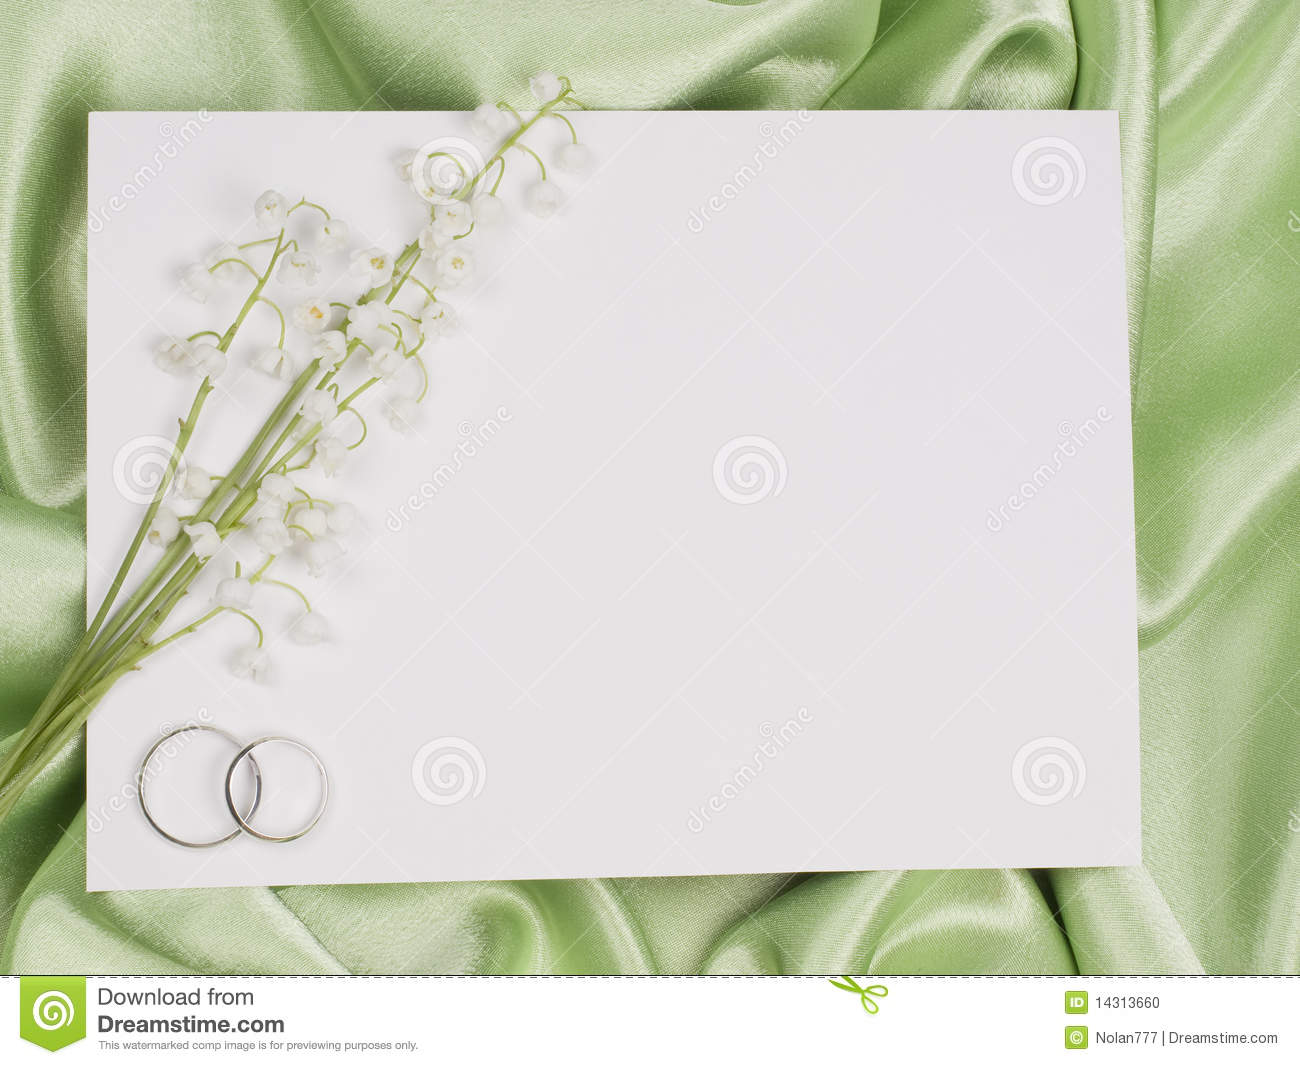 Wedding rings, card and lily of the valley